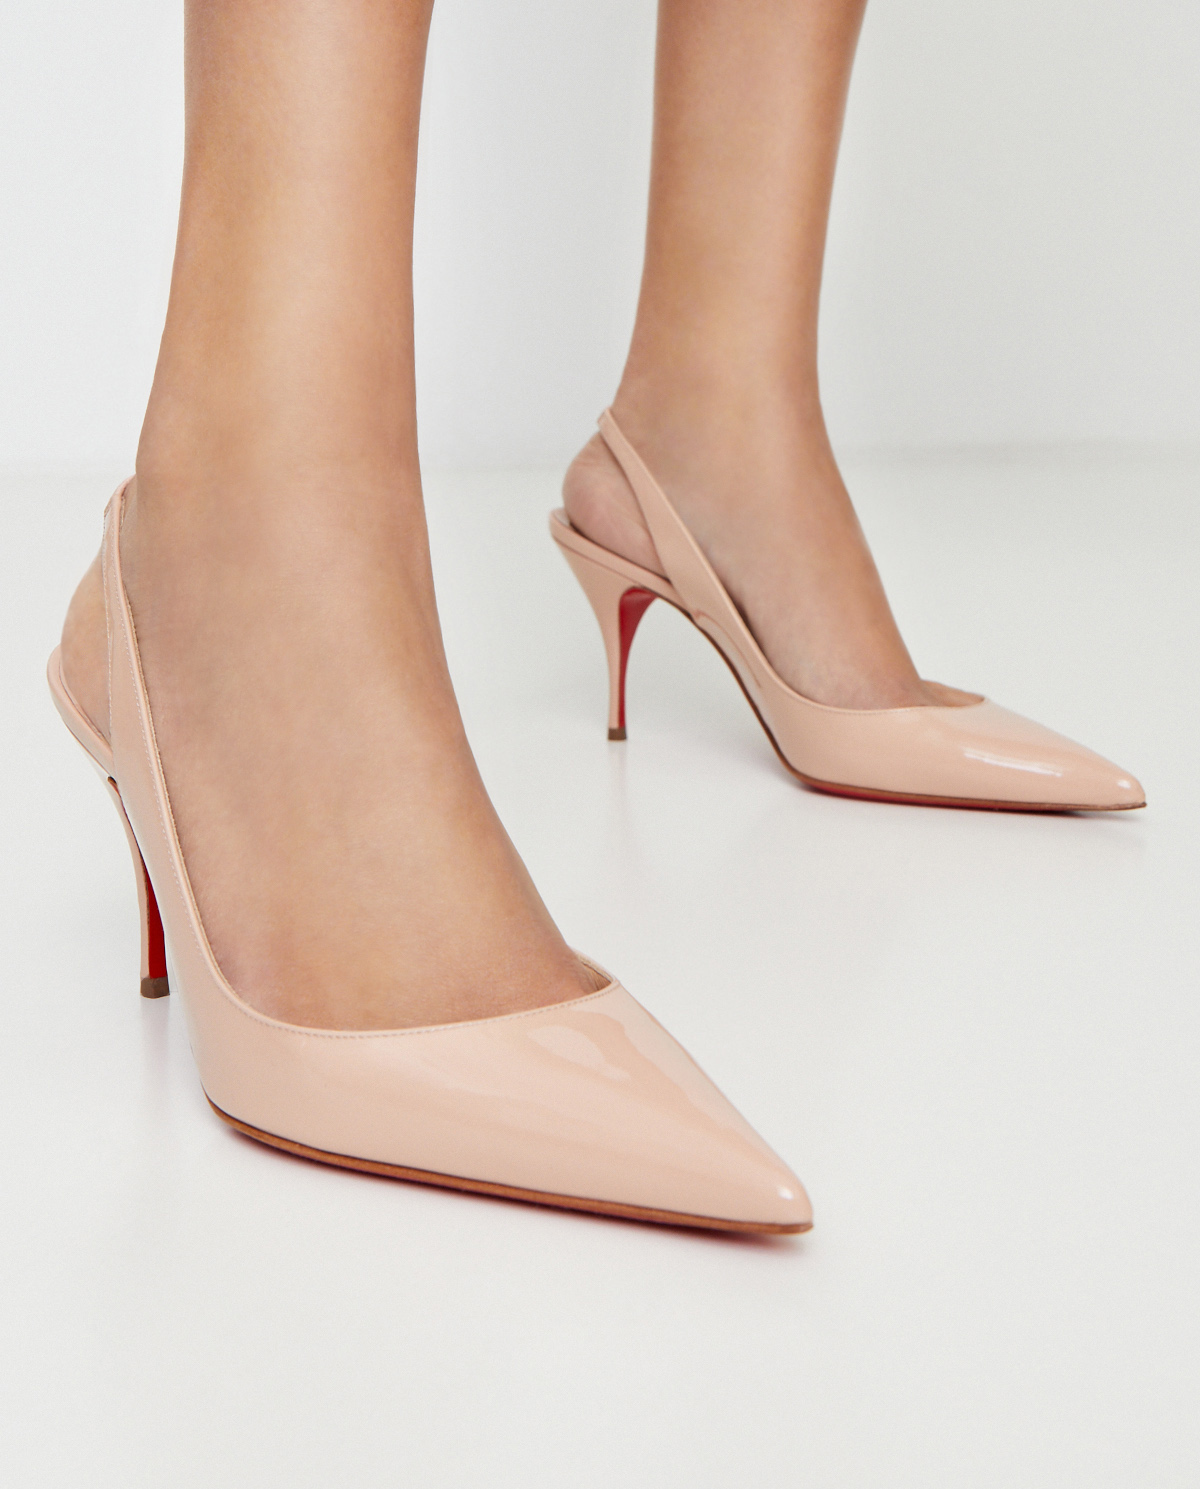 Beżowe szpilki Clare Sling Christian Louboutin 1190842 CLARE SLING 80 F401